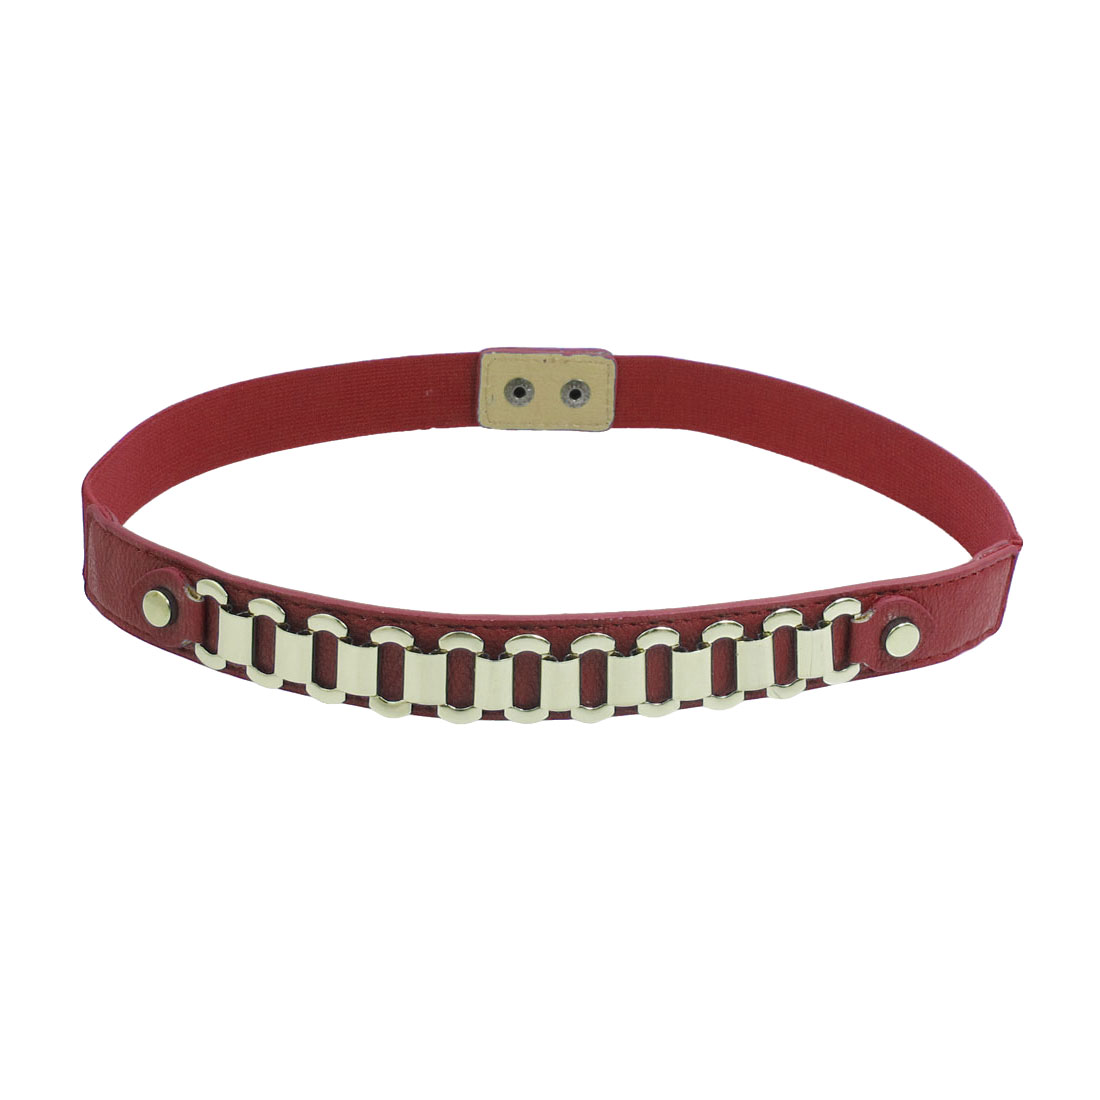 Lady Gold Tone Metal Chain Accent Faux Leather Elastic Waistband Red